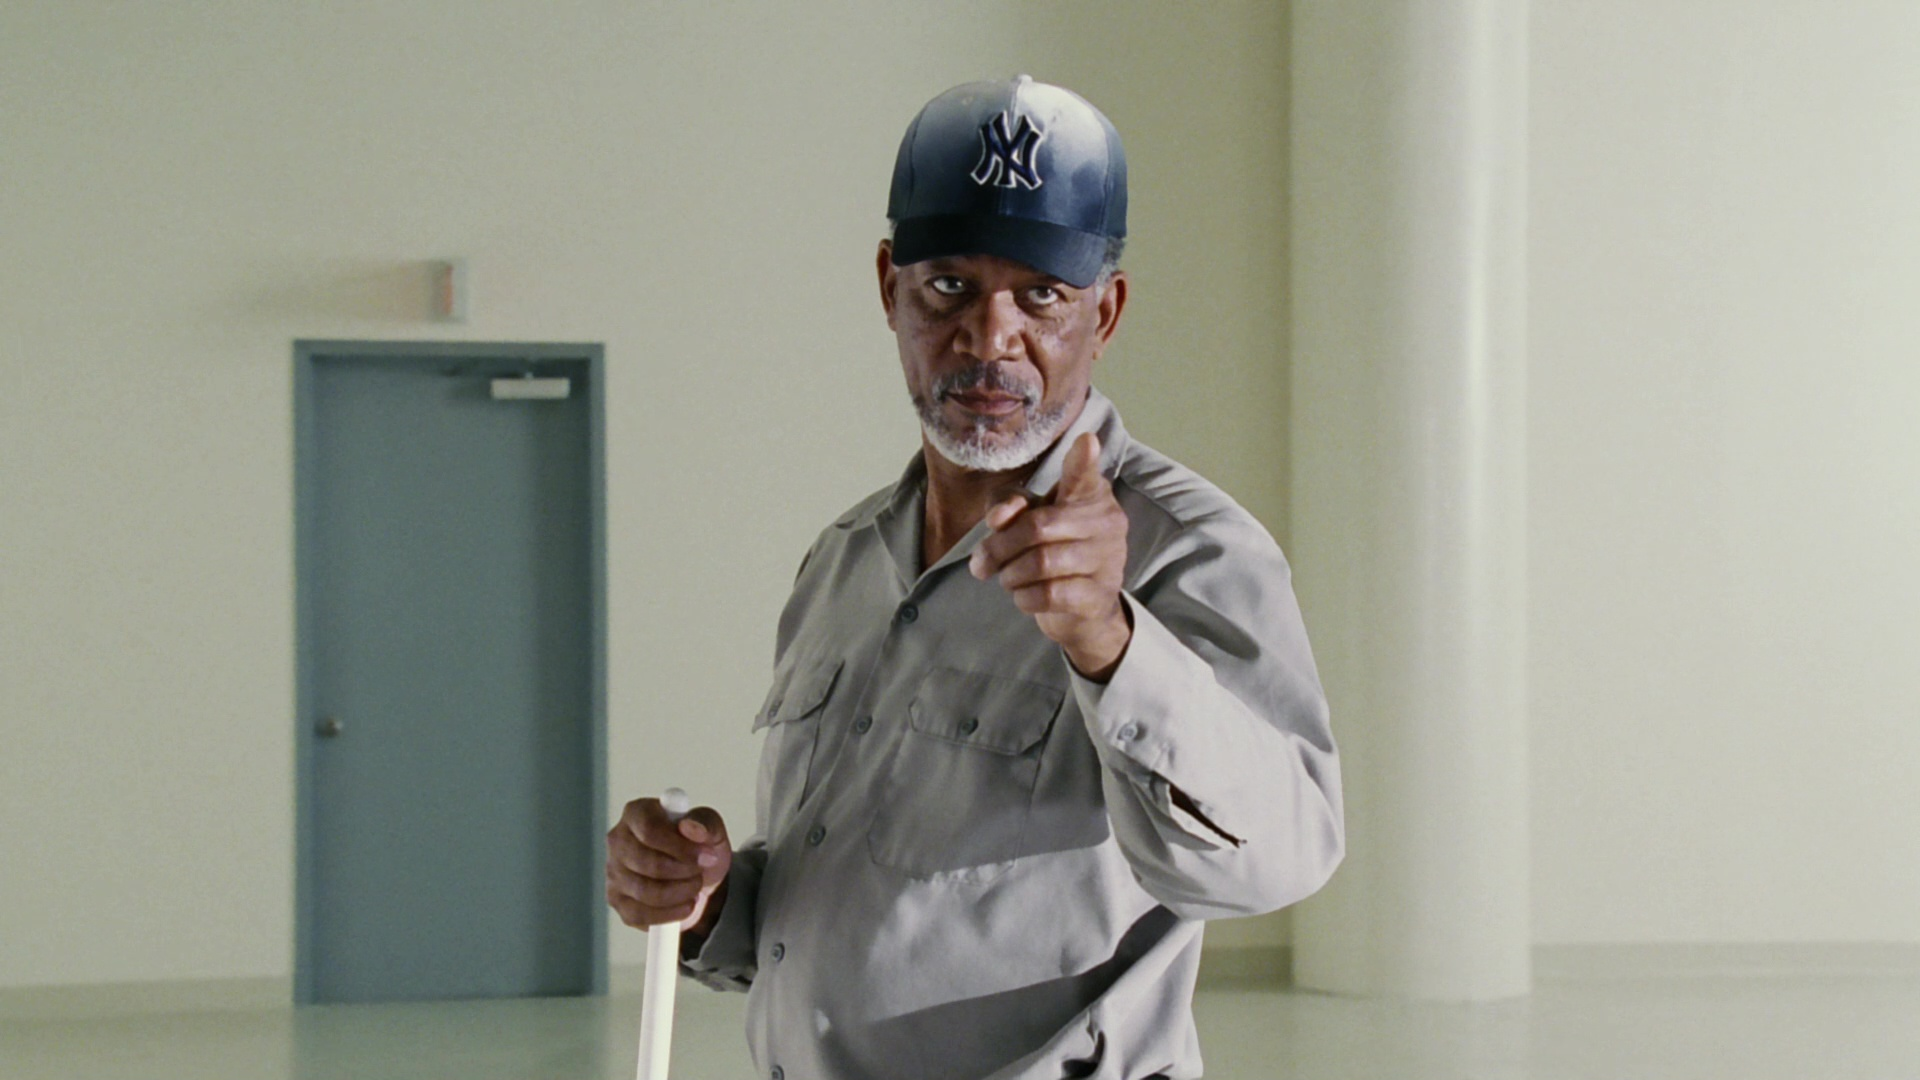 New York Yankees Baseball Team Cap Worn By Morgan Freeman